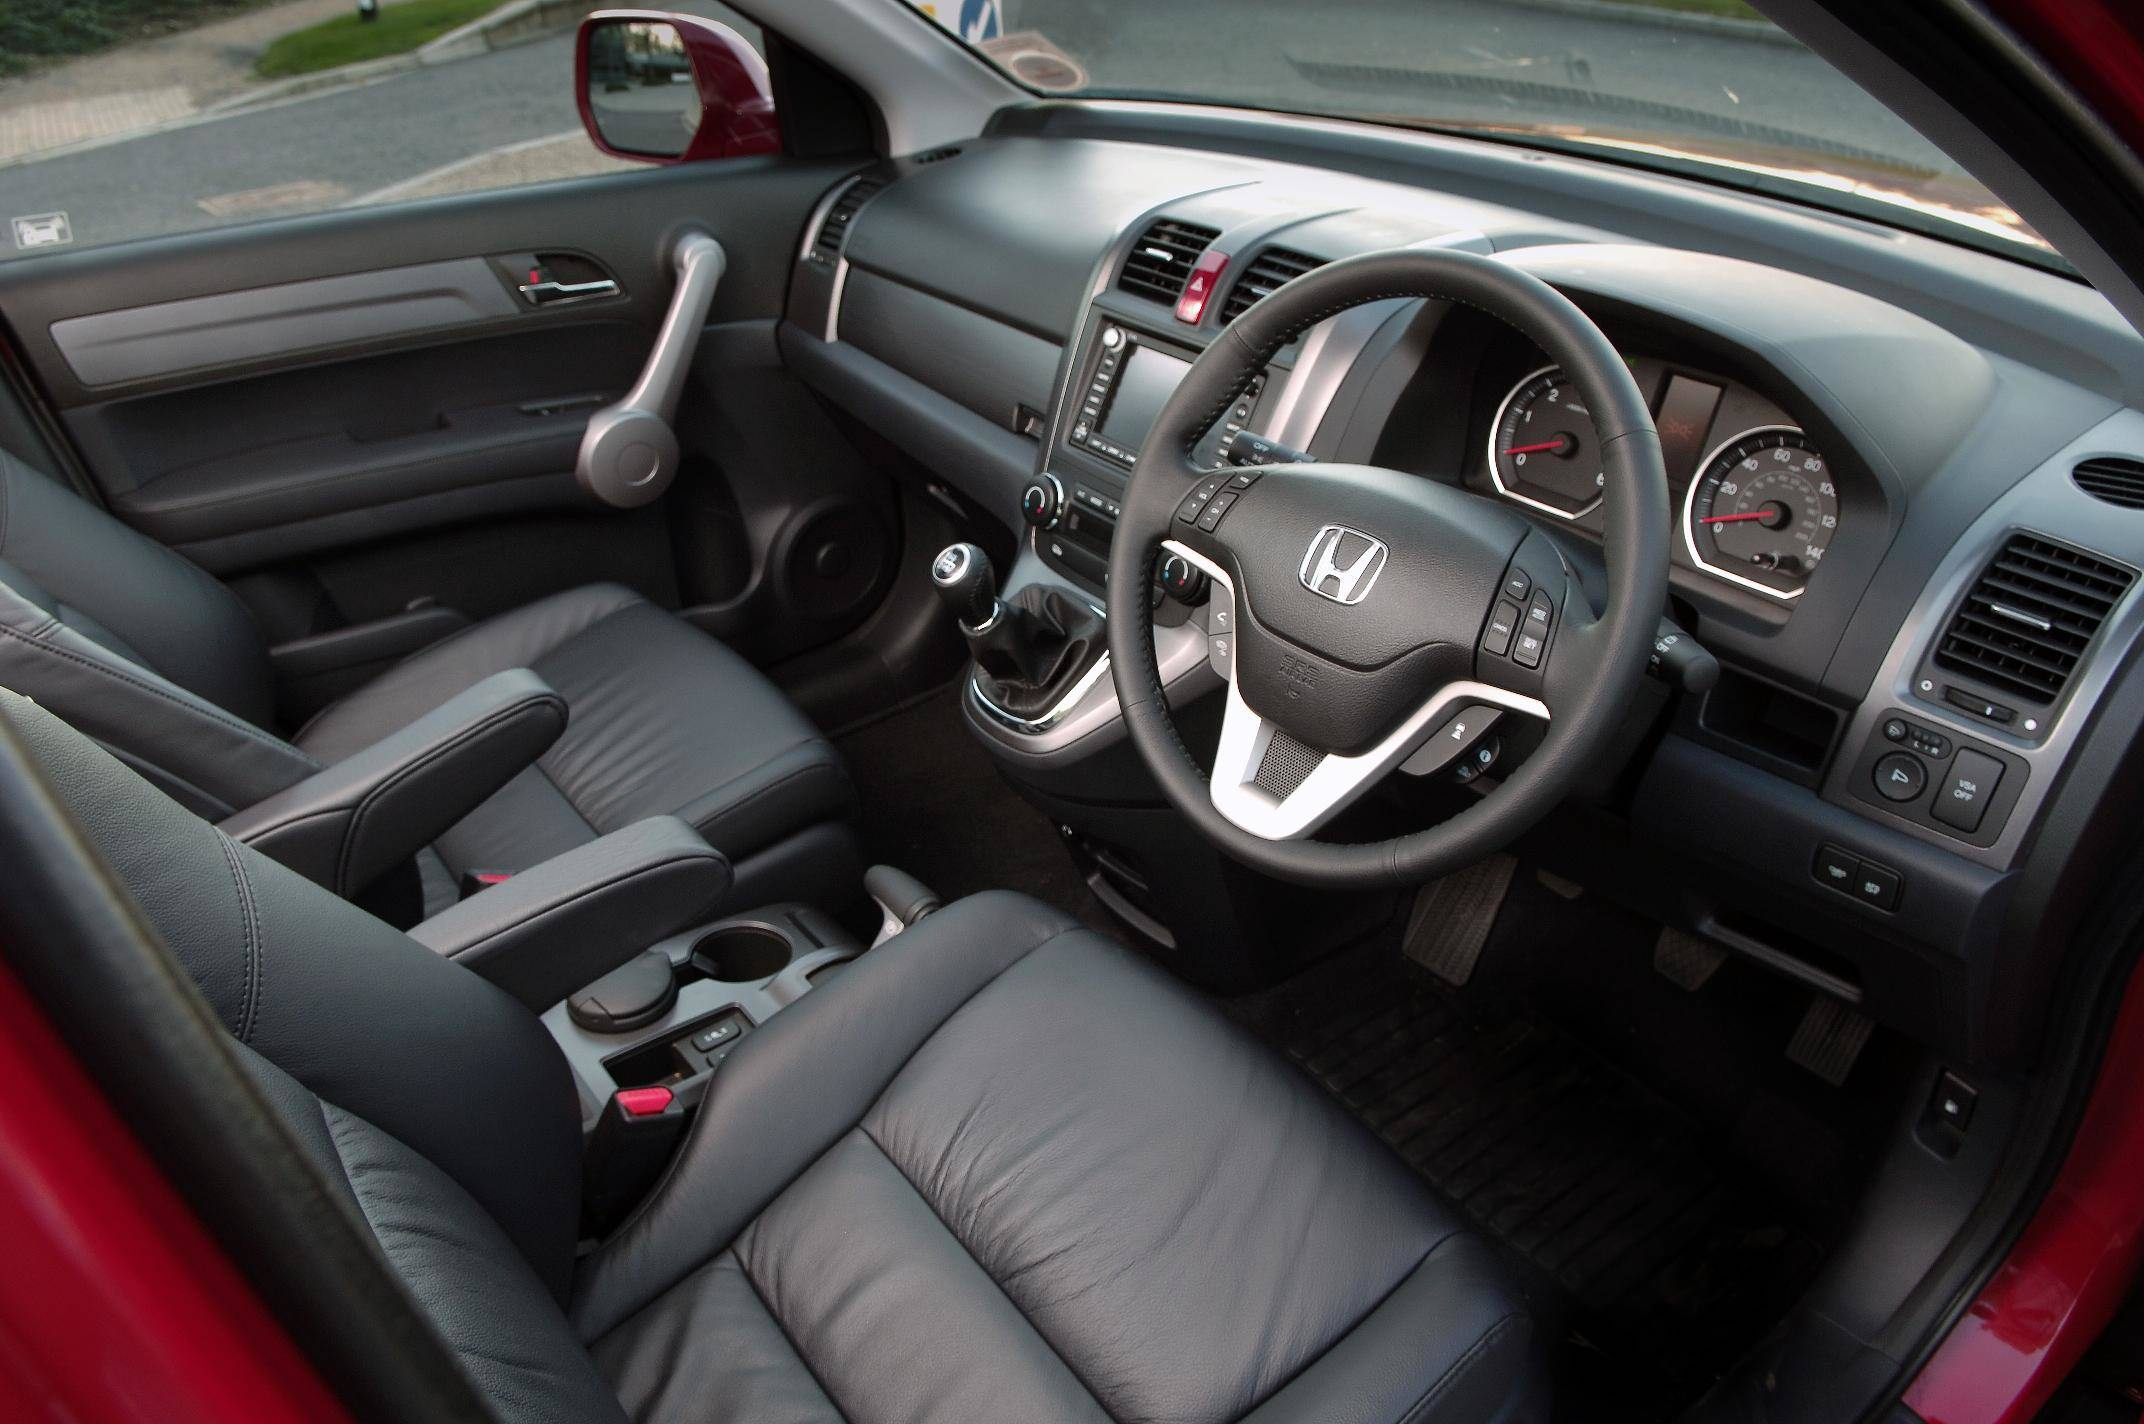 image of a honda cr-v car interior